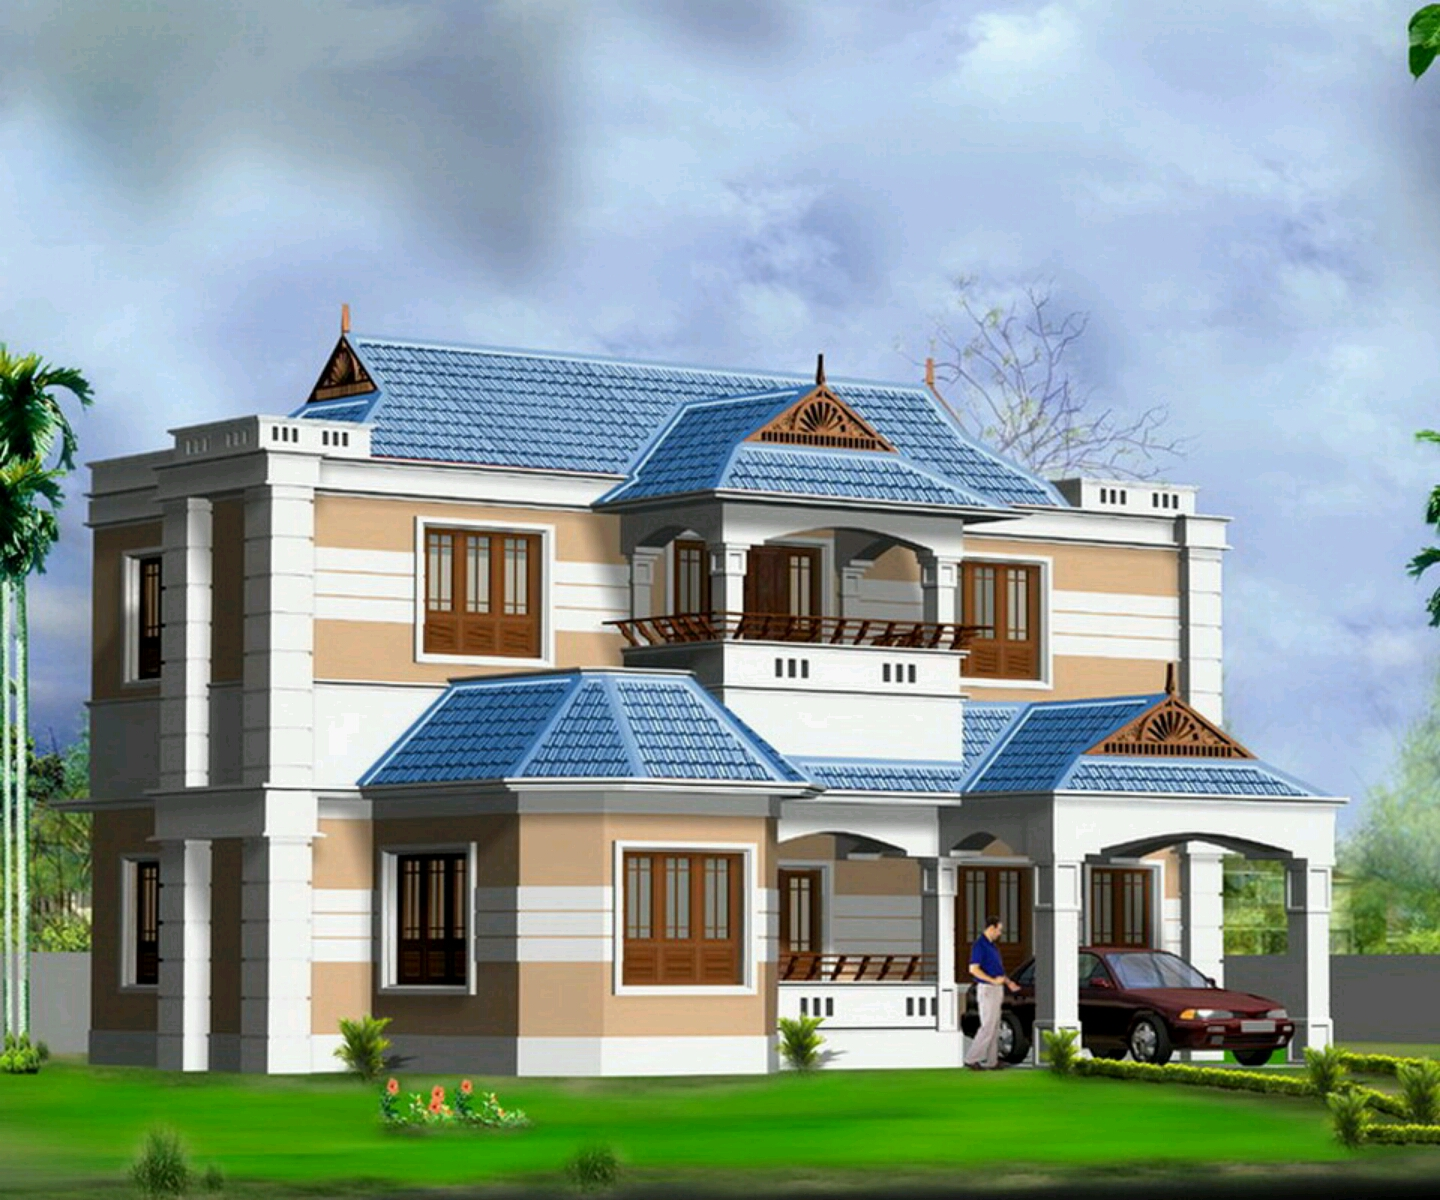 Homes Designs Star Dreams Homes